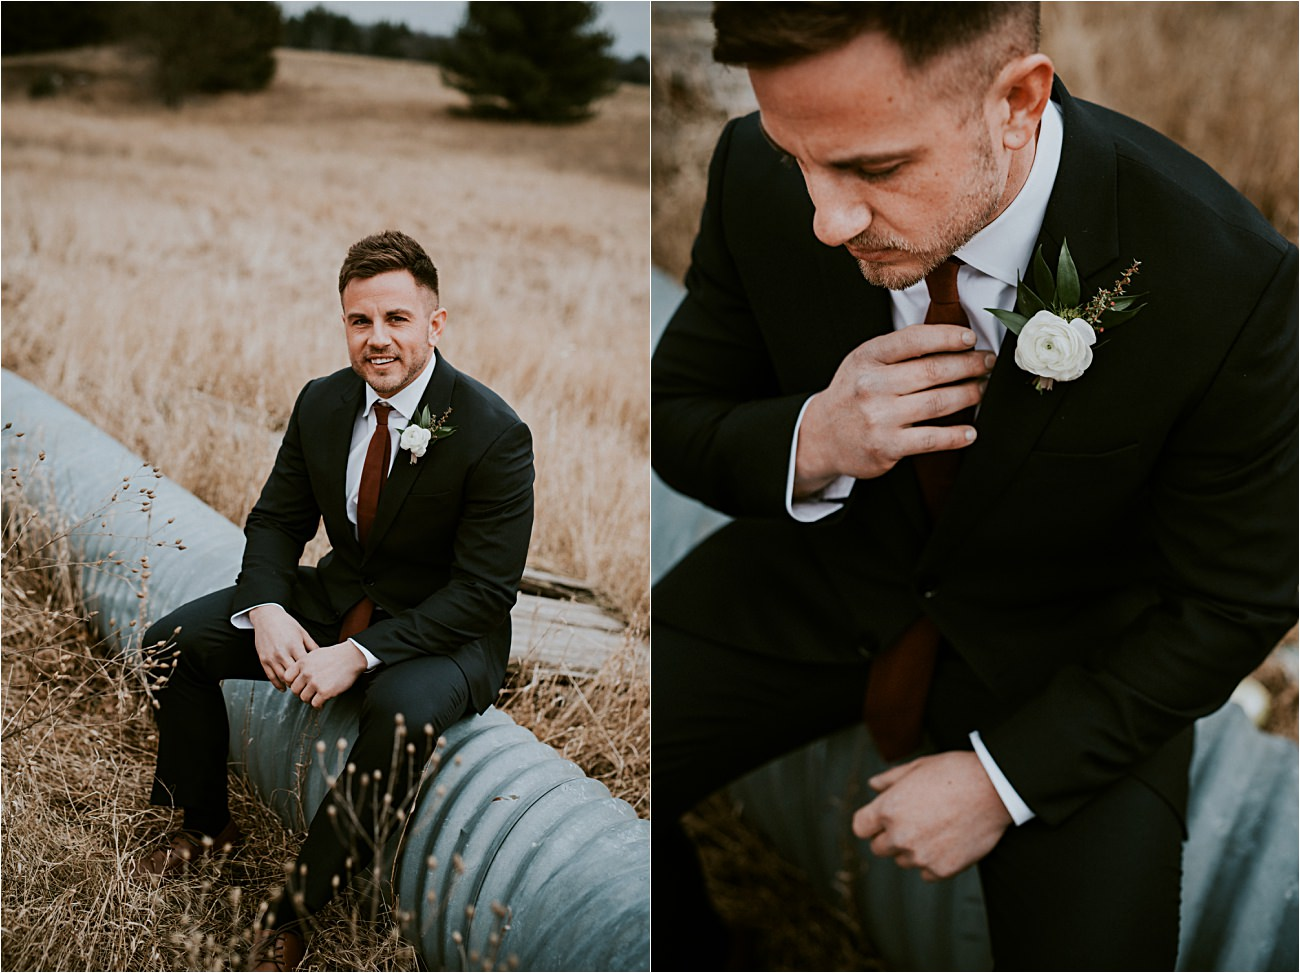 Groom Getting Ready - Magnolia Farms Wedding - Moody Wisconsin Wedding - Grey Wedding Dress - Natural Intuition Photography - Wisconsin Wedding Photographer